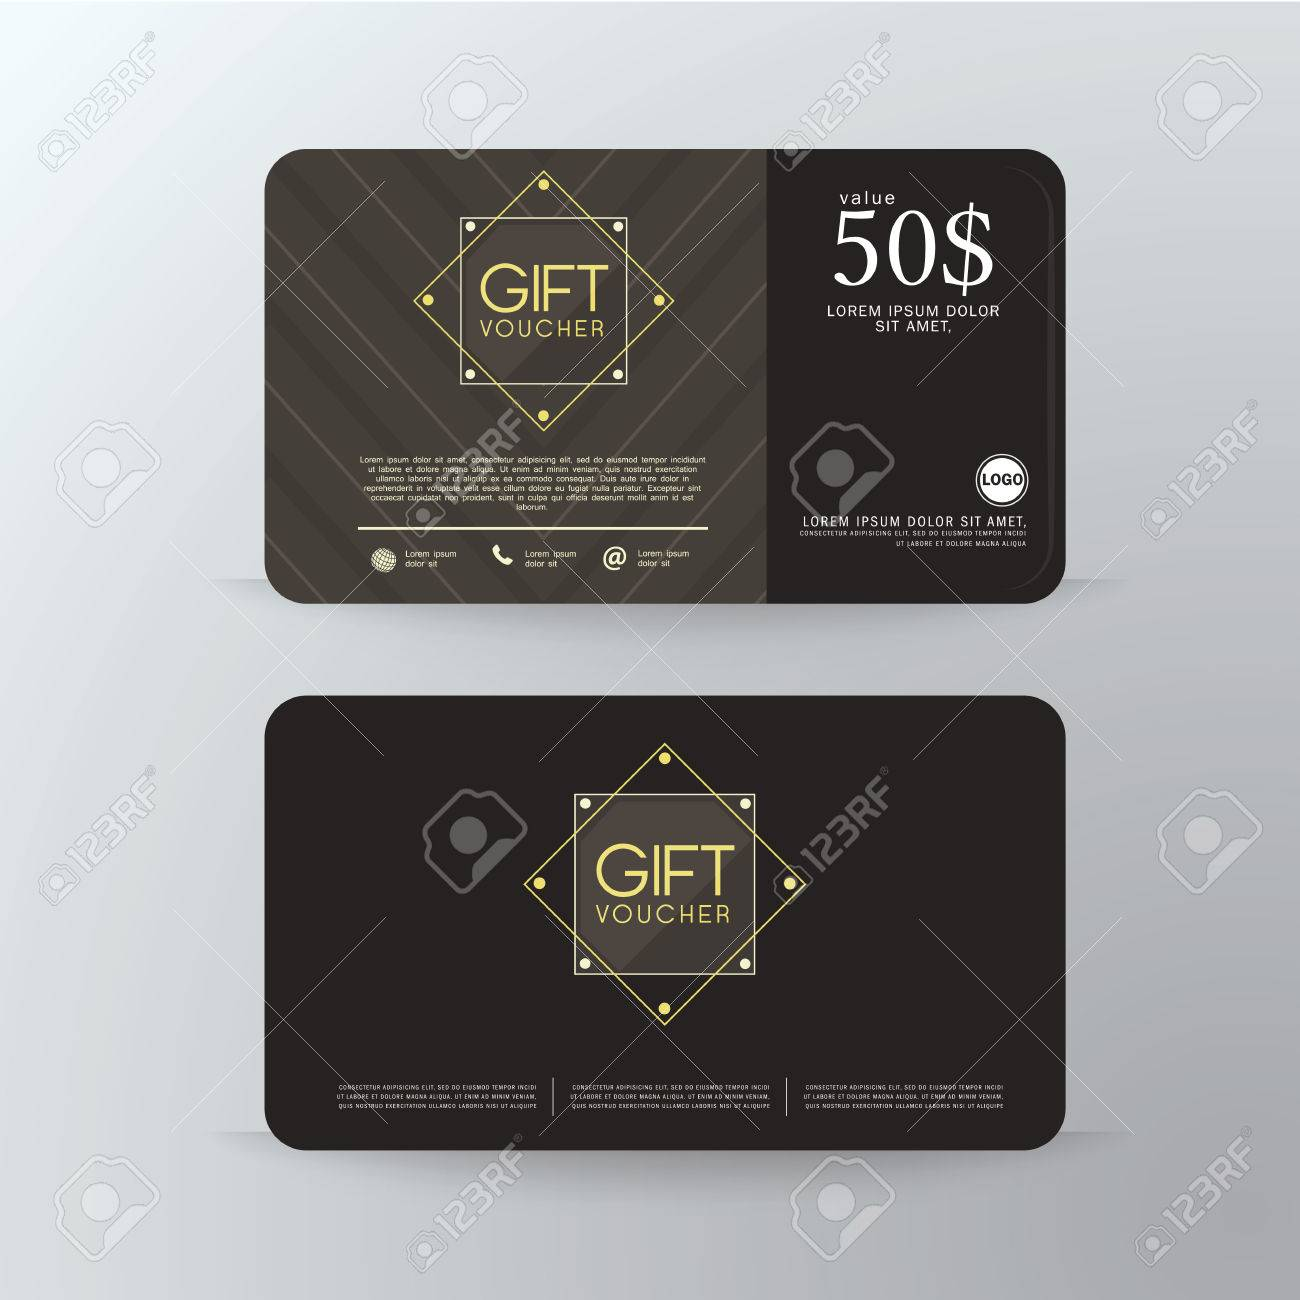 Gift Voucher Premier Cards, Business Cards.Gift Voucher Template ...